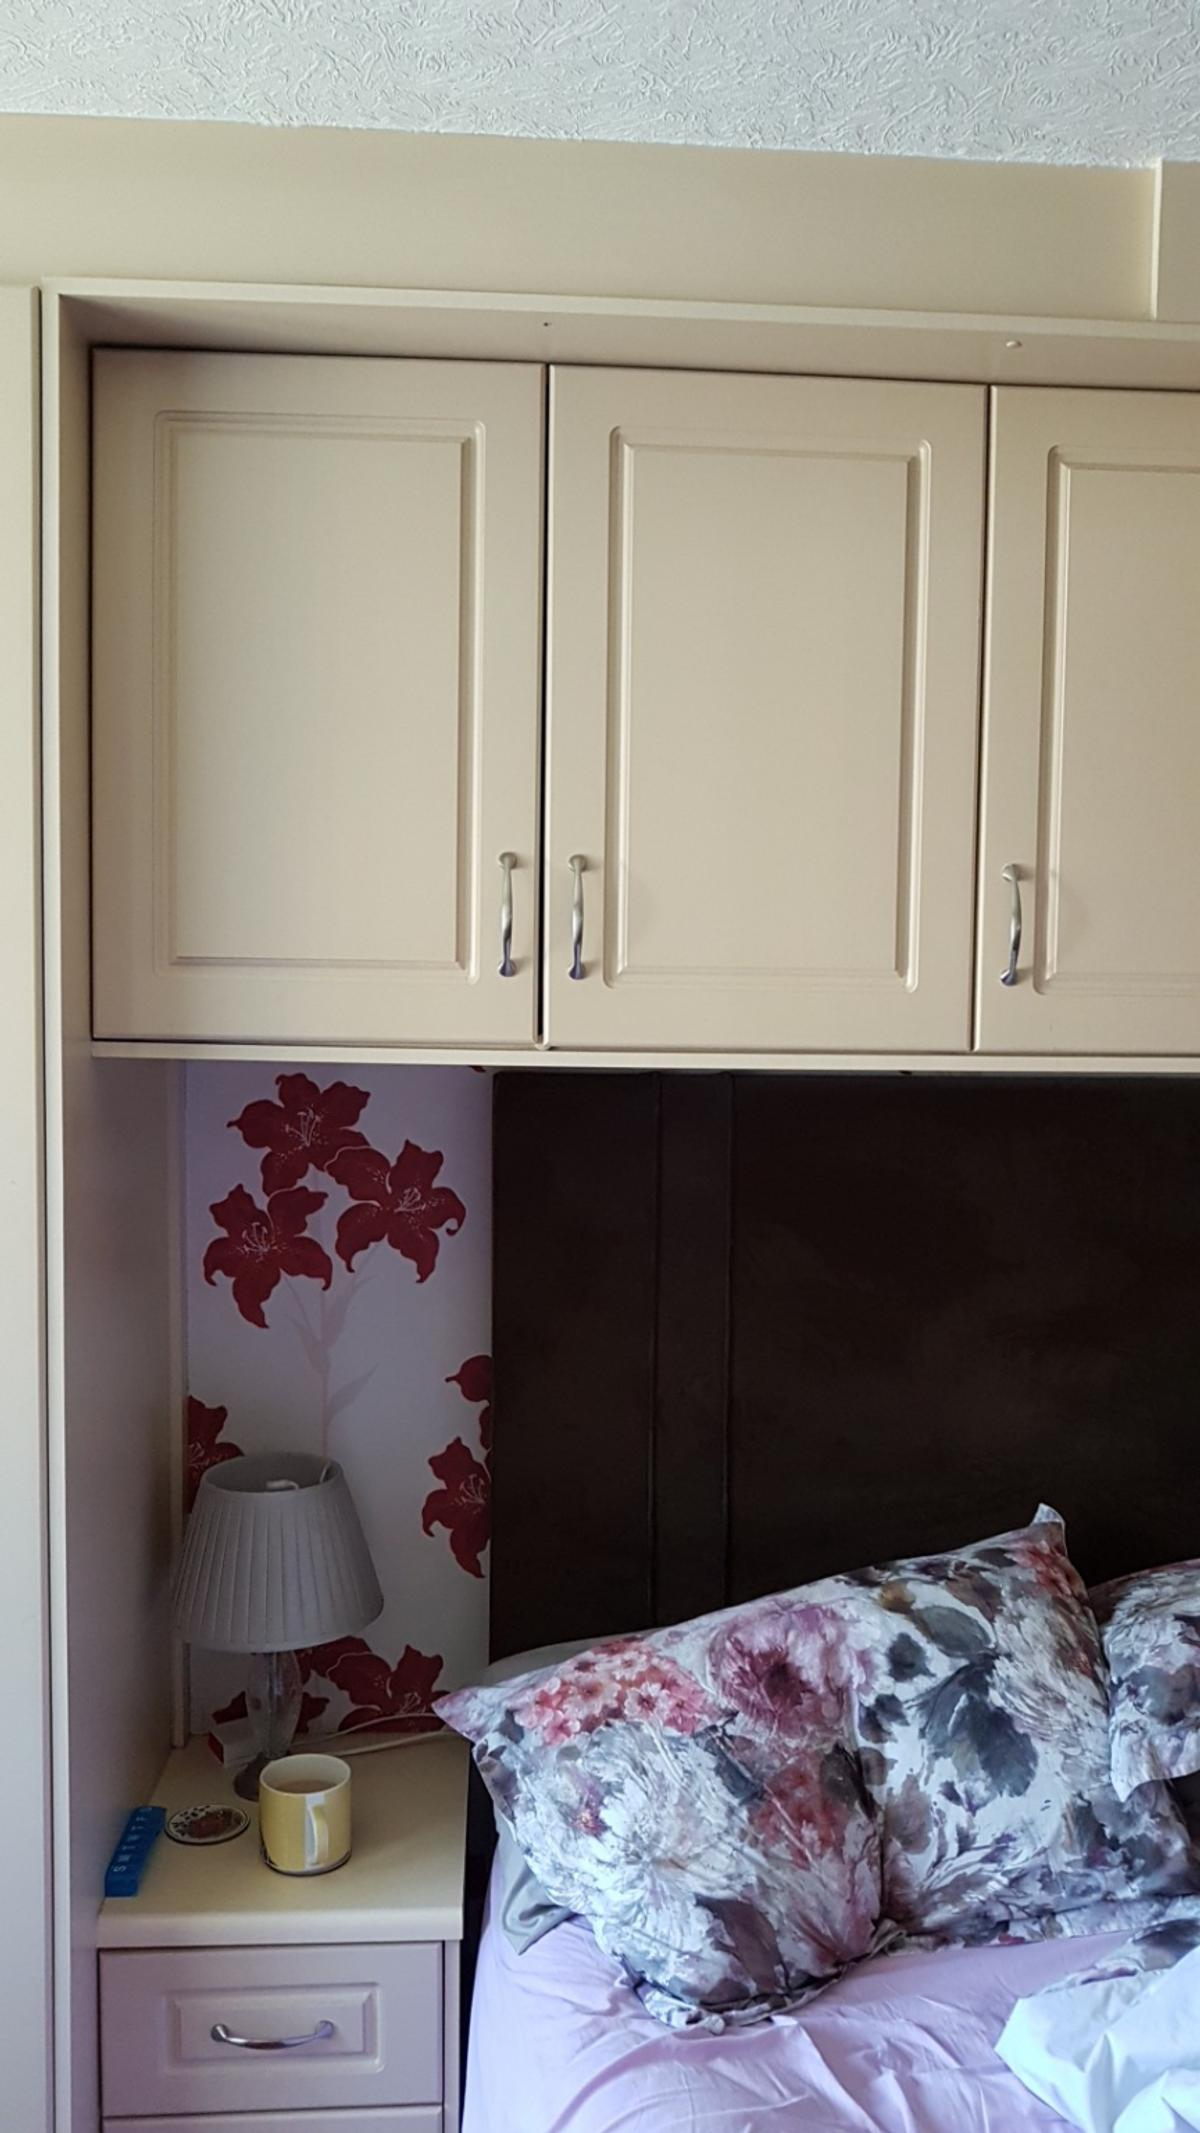 Bedroom Furniture Doors And Drawers In Kirklees For 100 00 For Sale Shpock